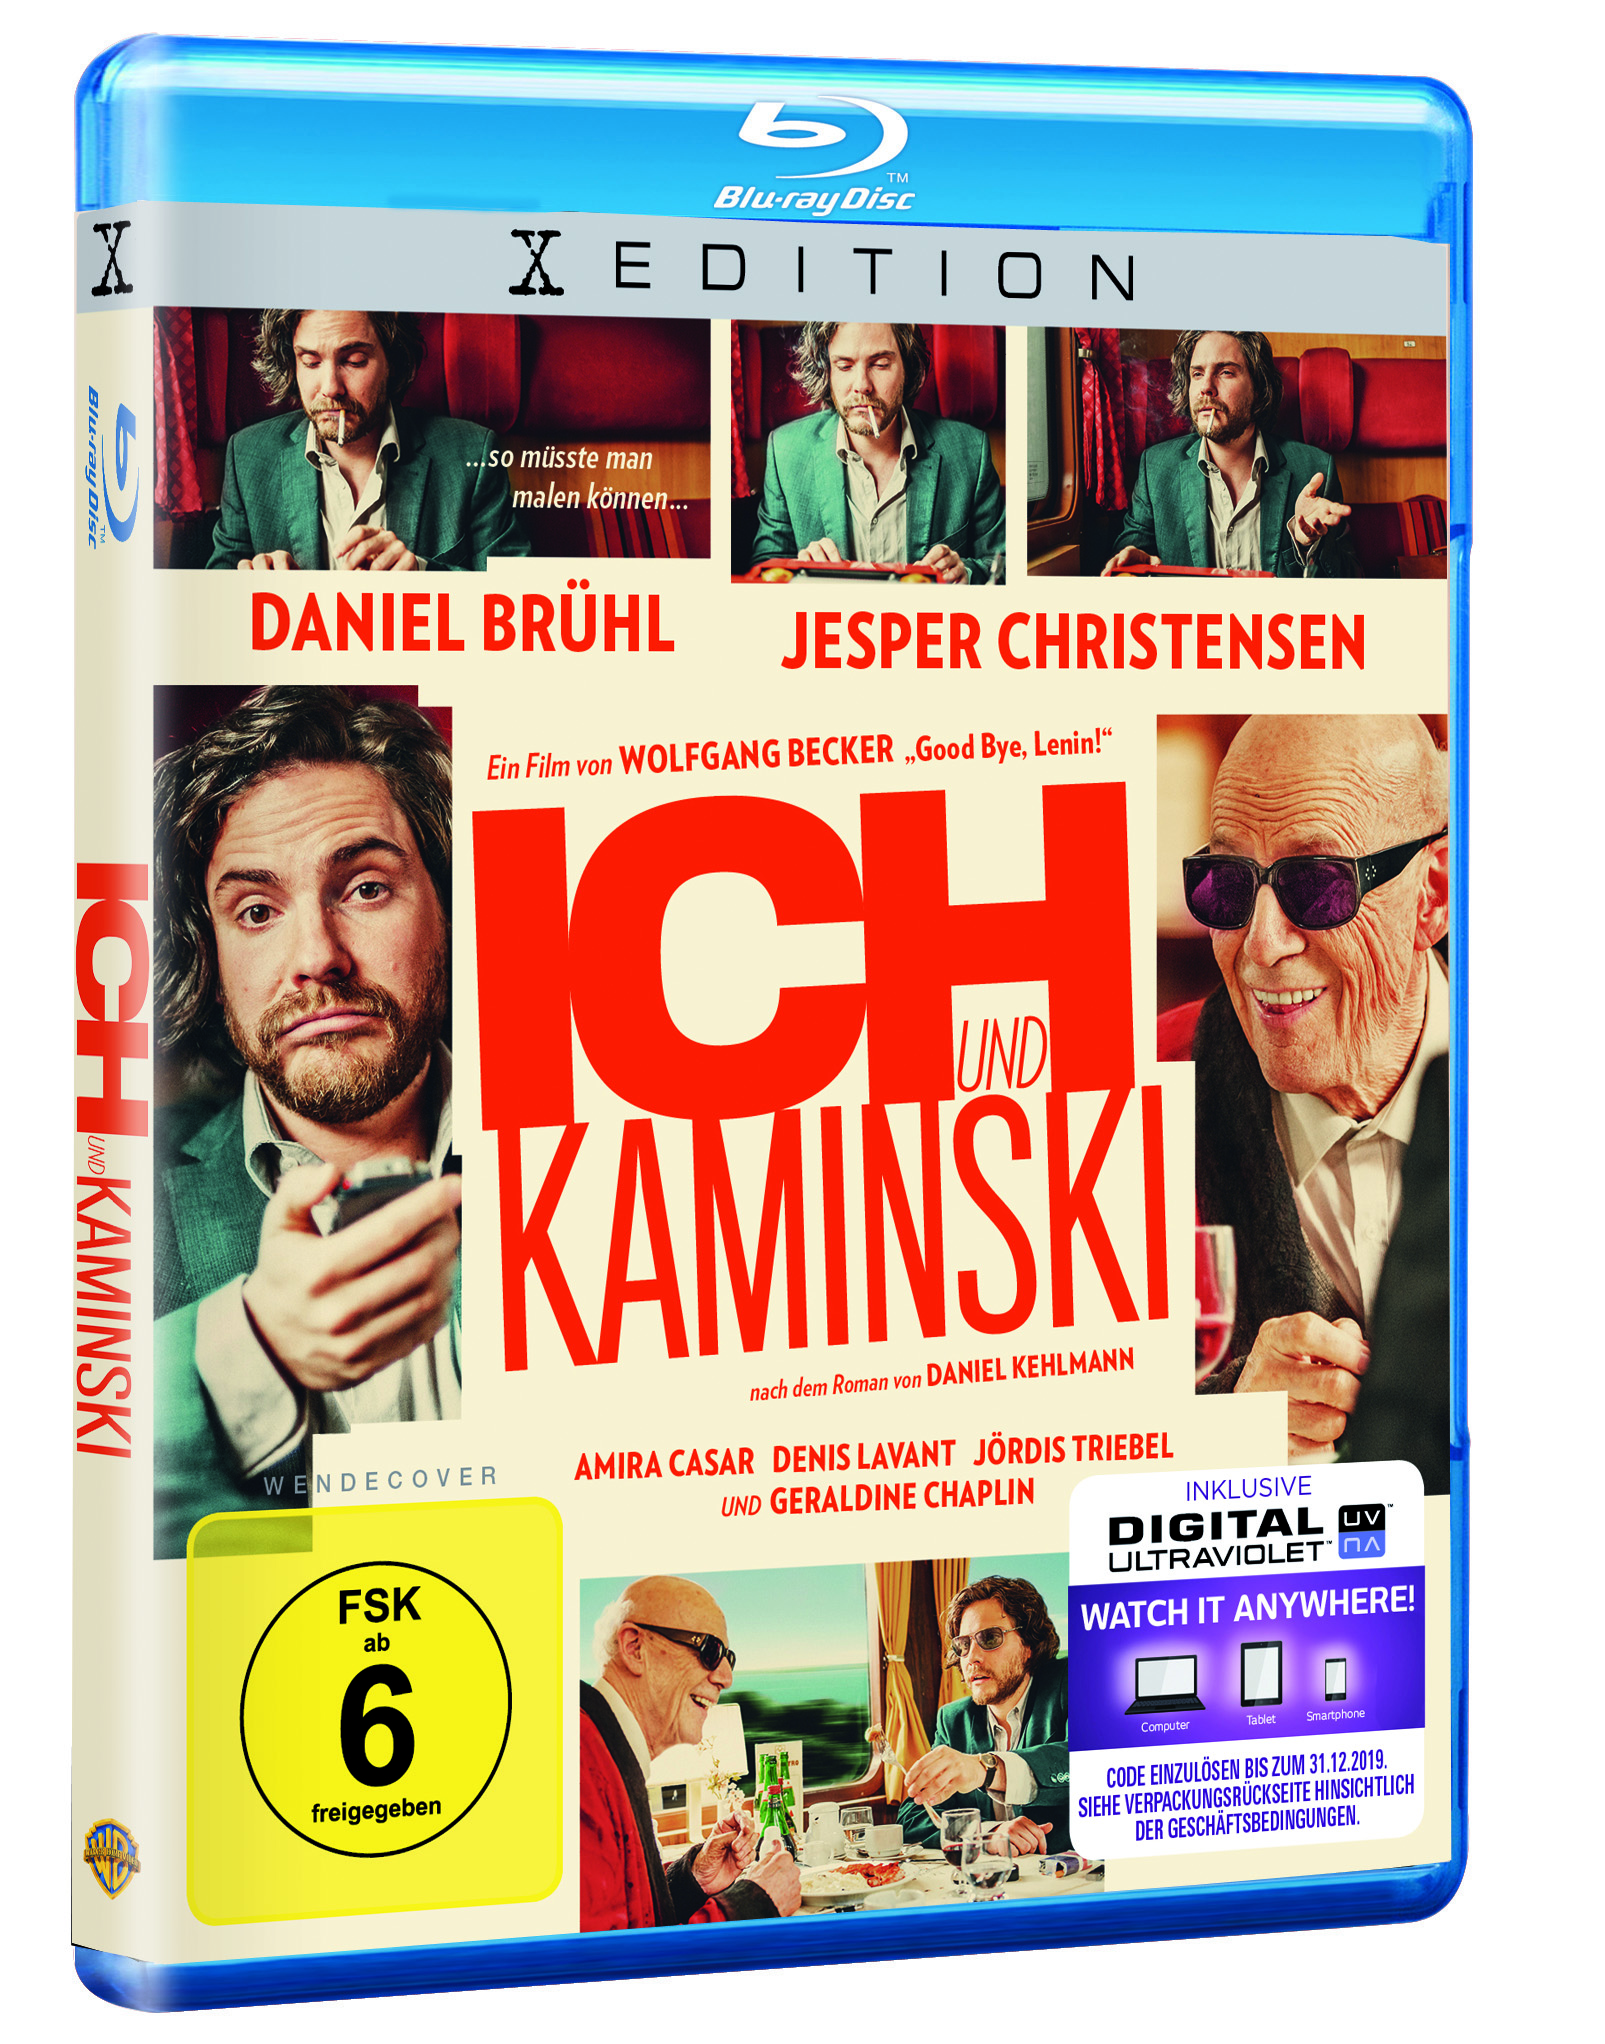 DVD + BLU-RAY + VIDEO ON DEMAND: ICH UND KAMINSKI